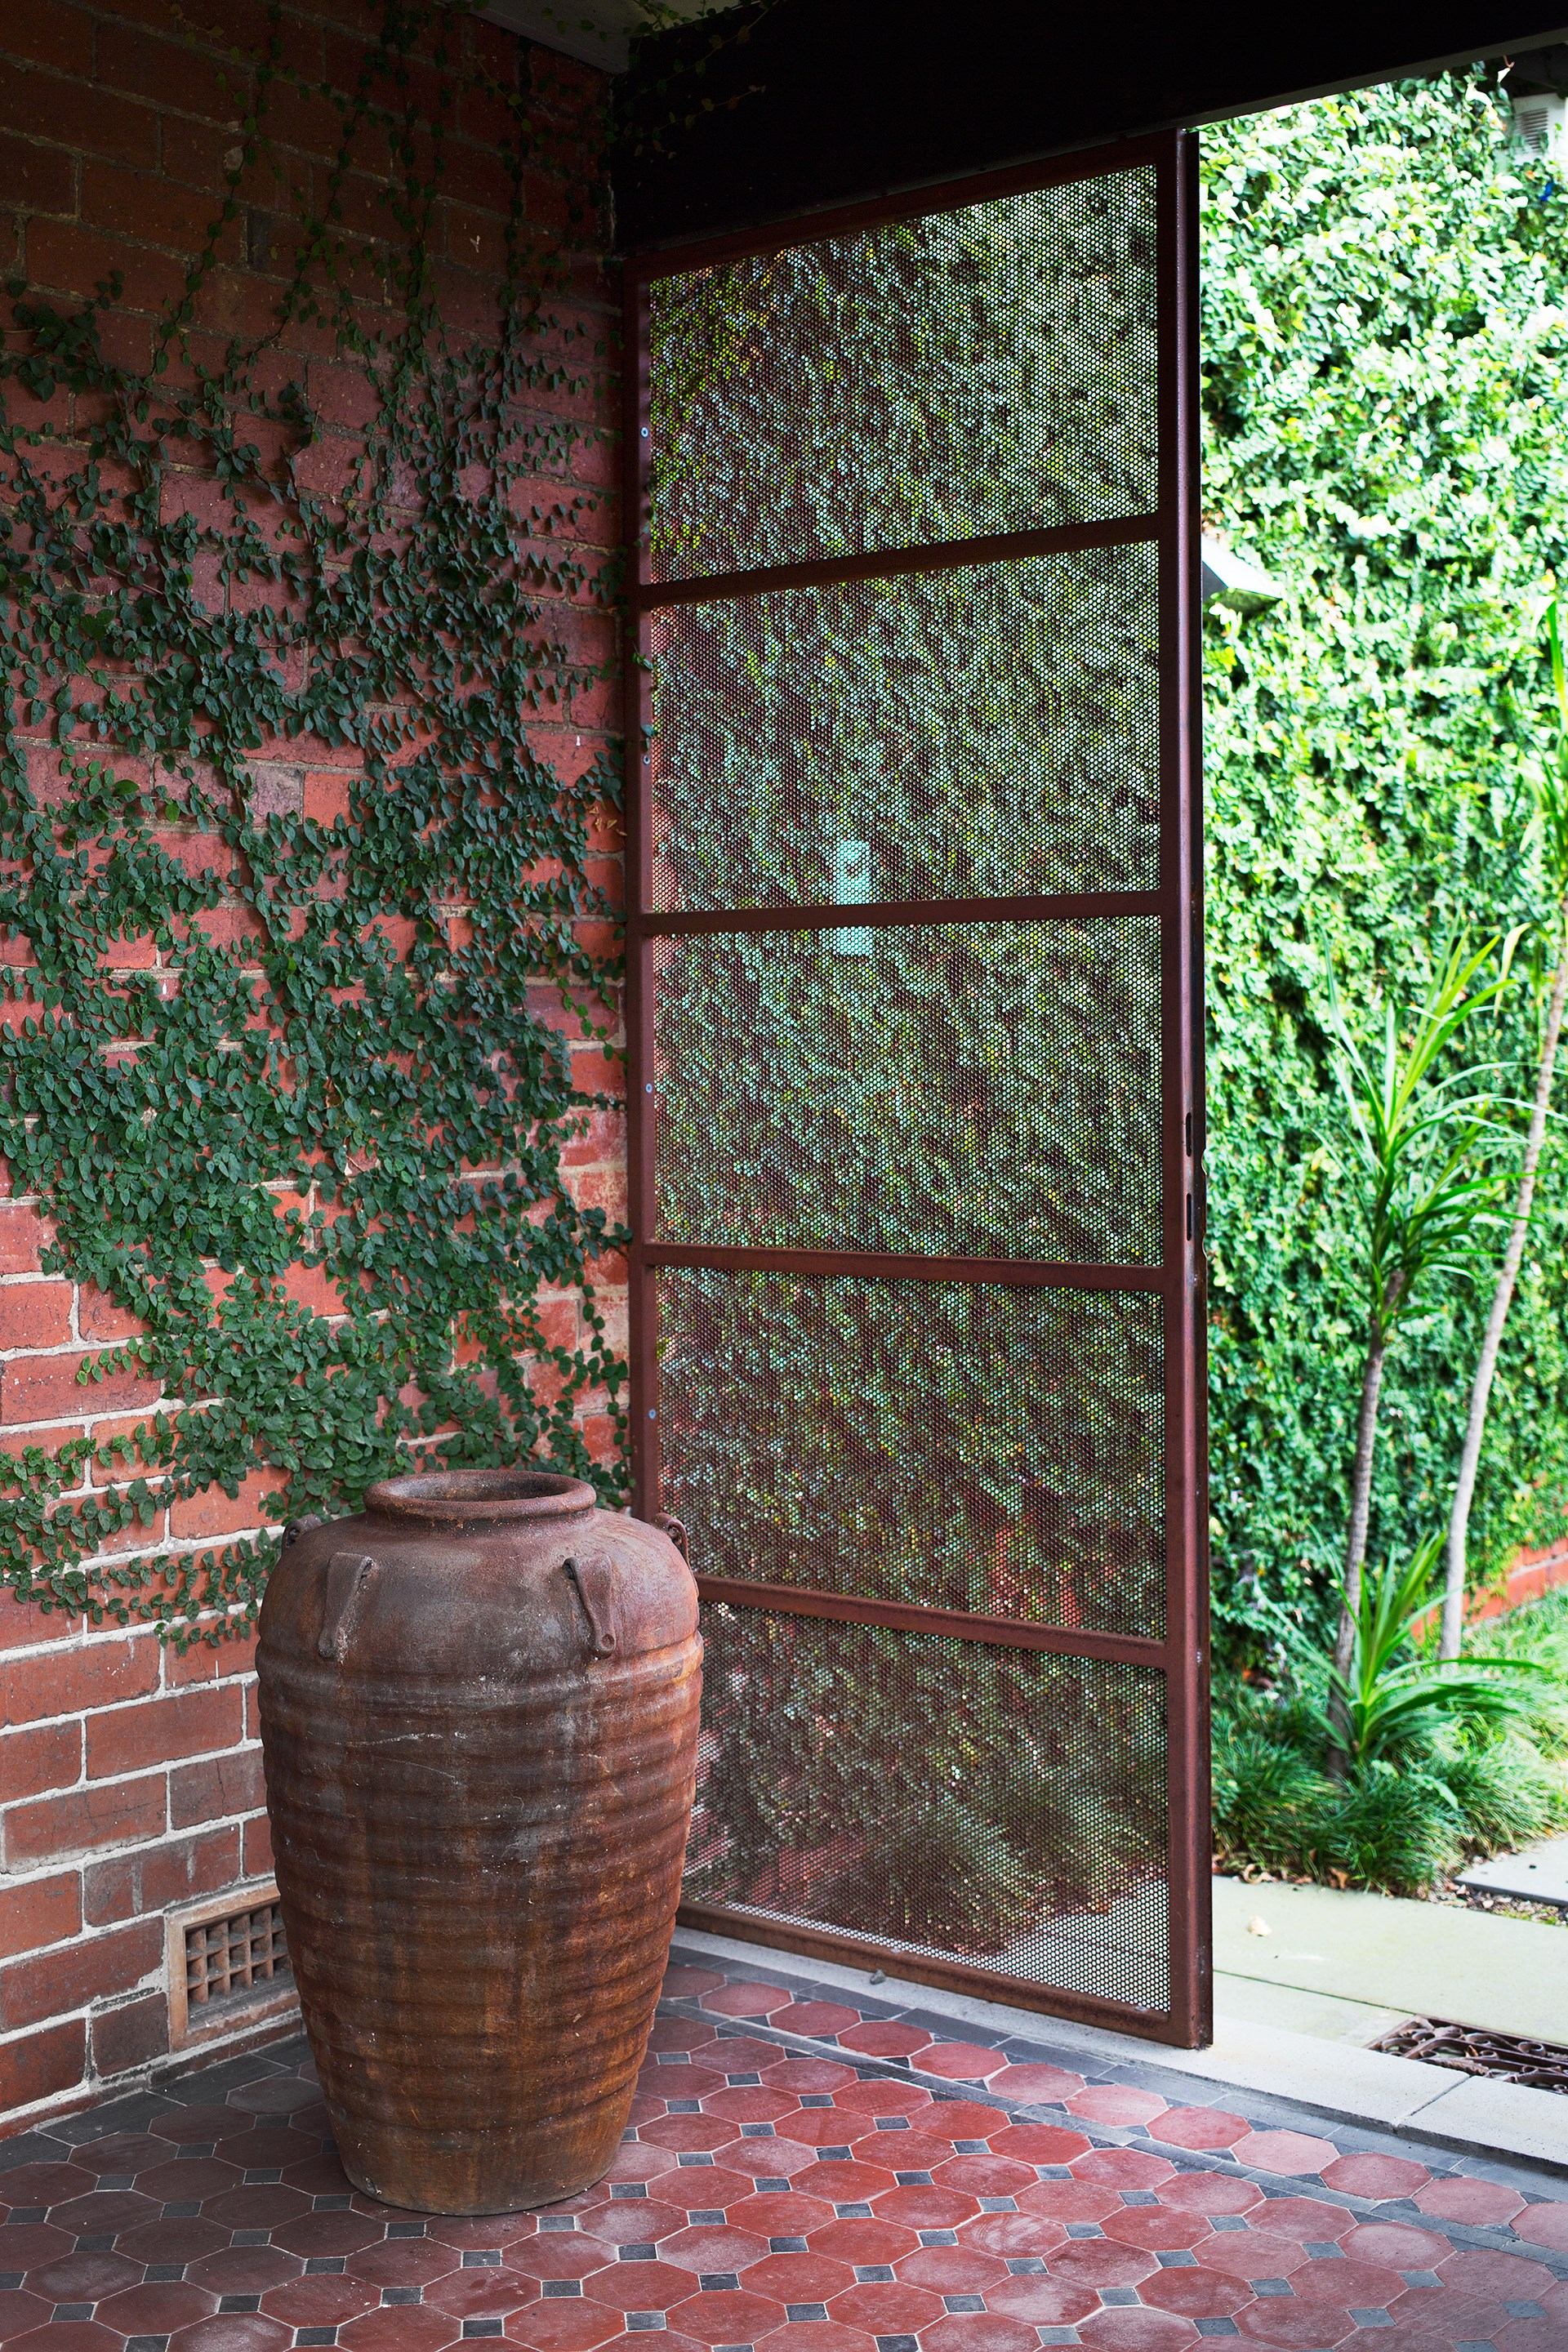 A climbing fig, Ficus pumila, carpets the brick wall at the entrance and appears to emerge from a weathered pot.